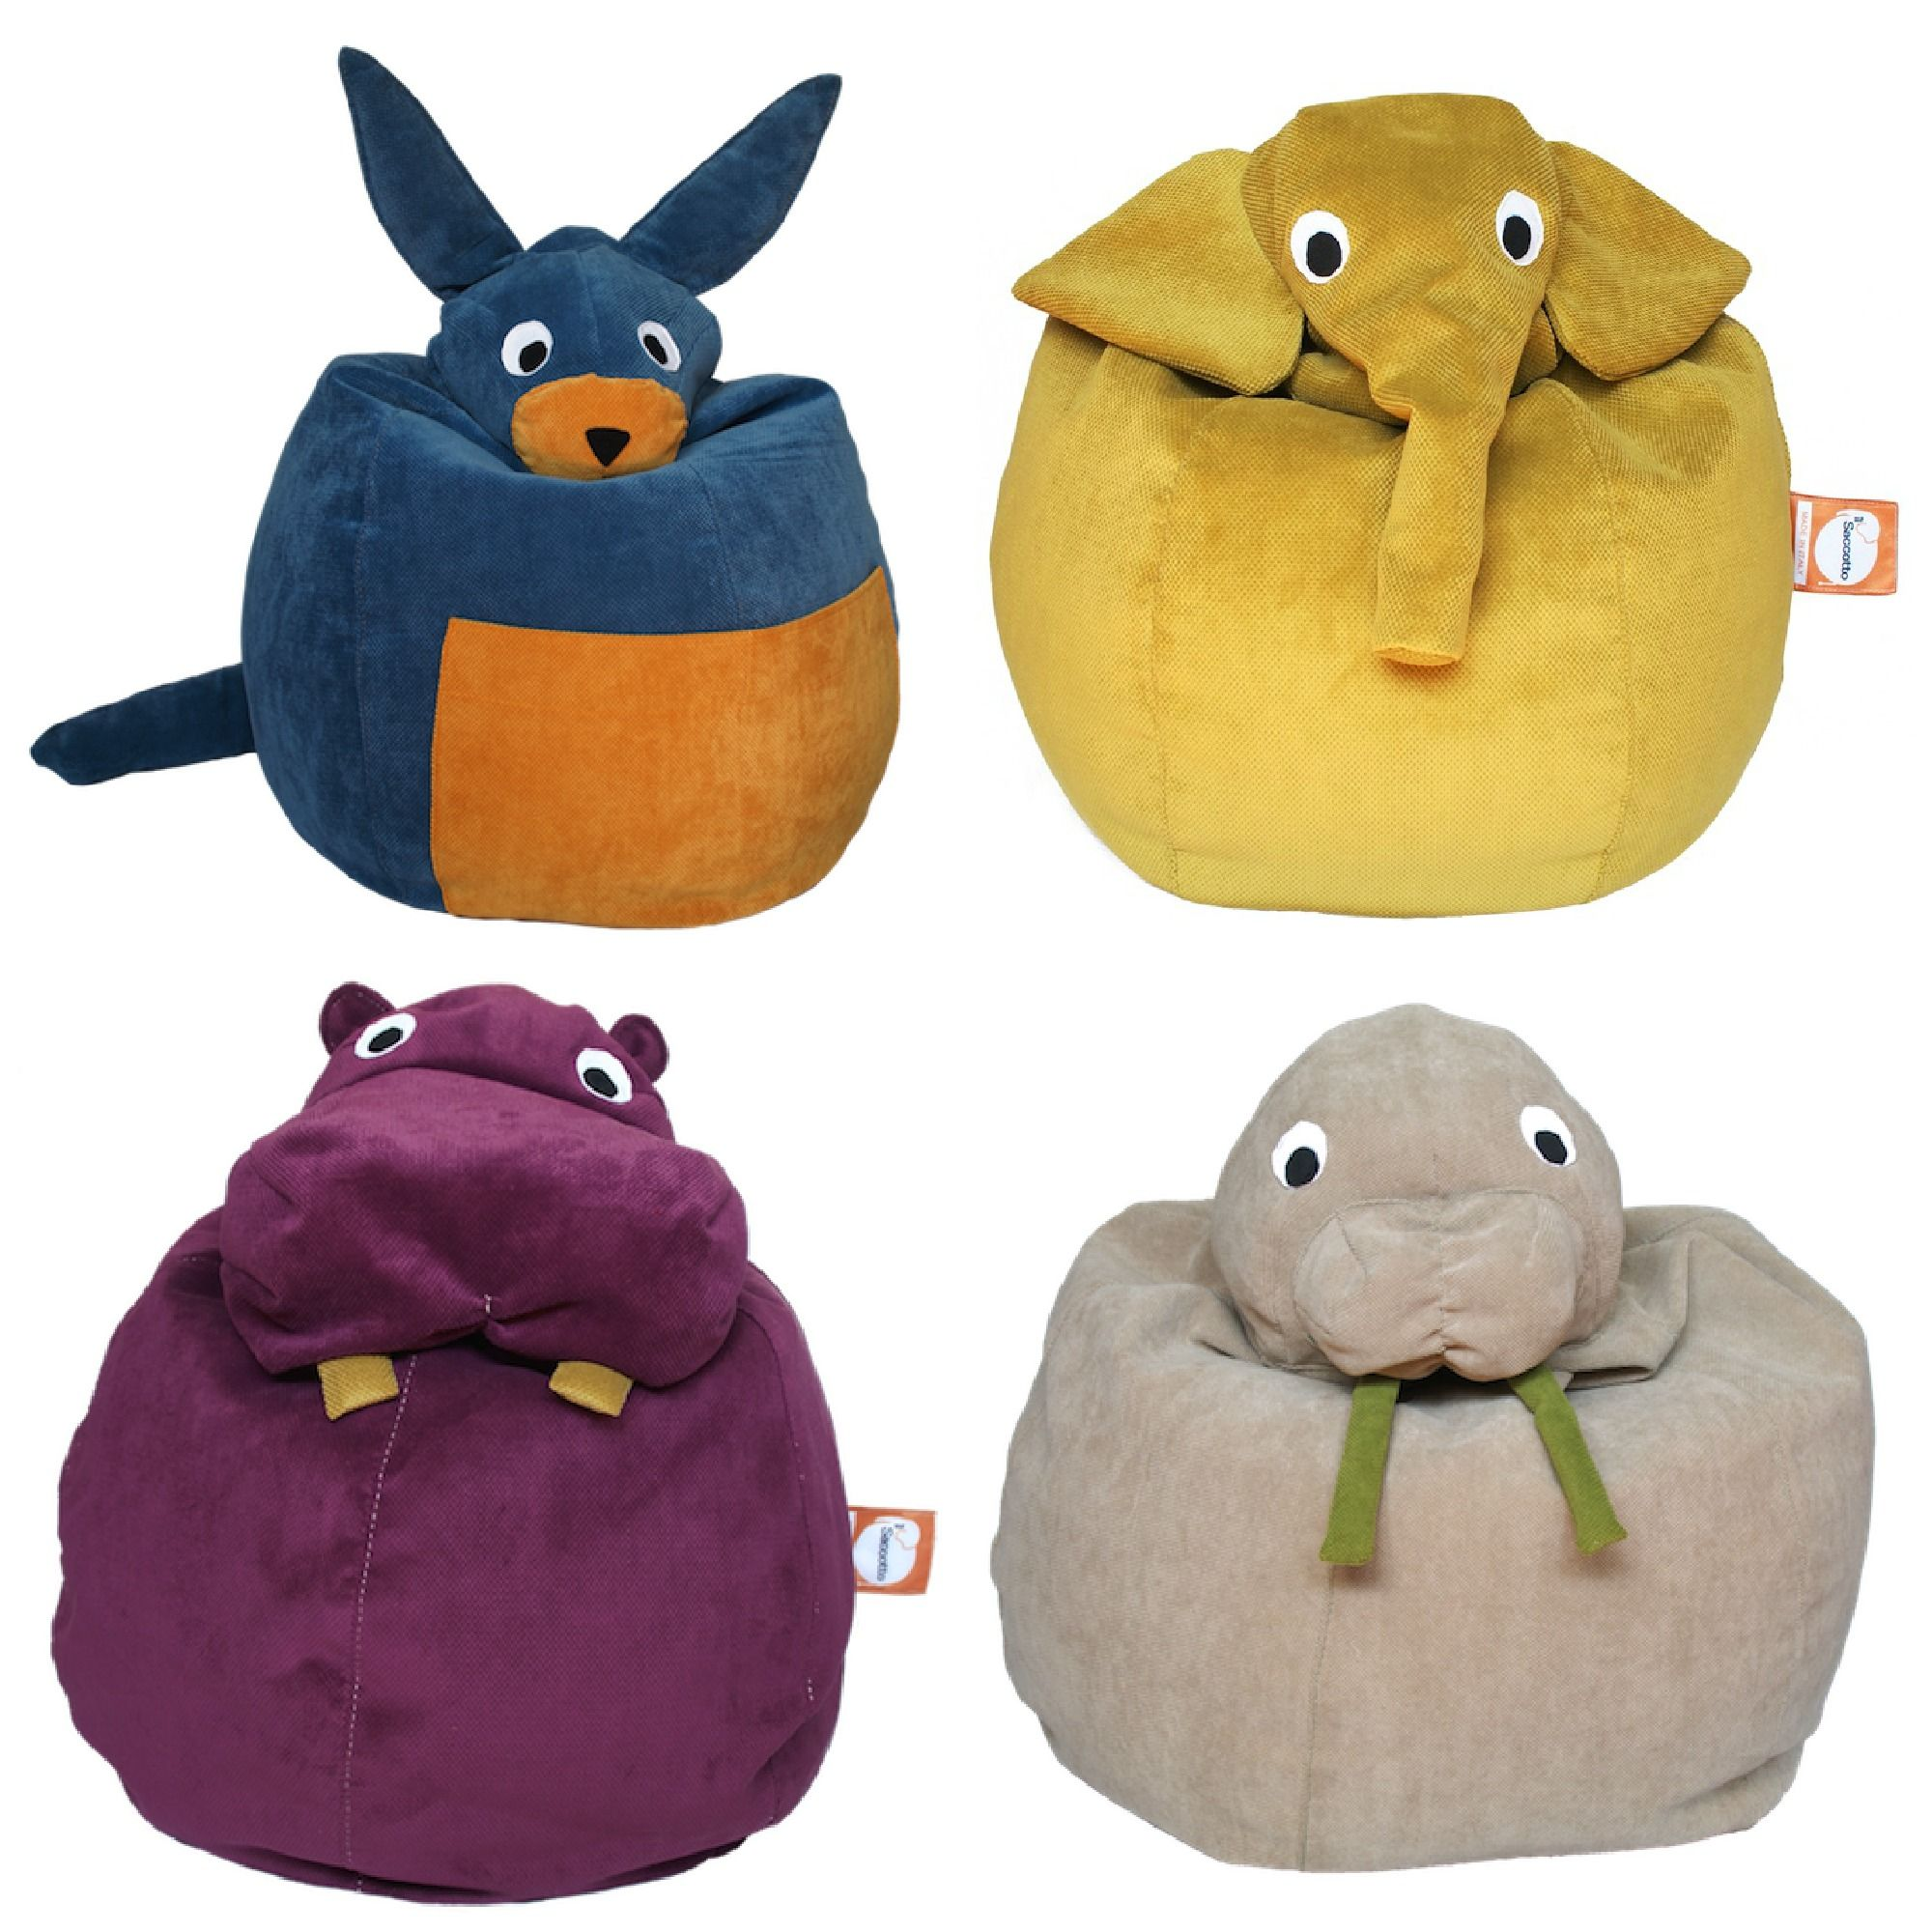 Il Saccotto Bean Bag Chairs Are Super Cute And Grow With Your Baby. Serious  Snuggle Factor.